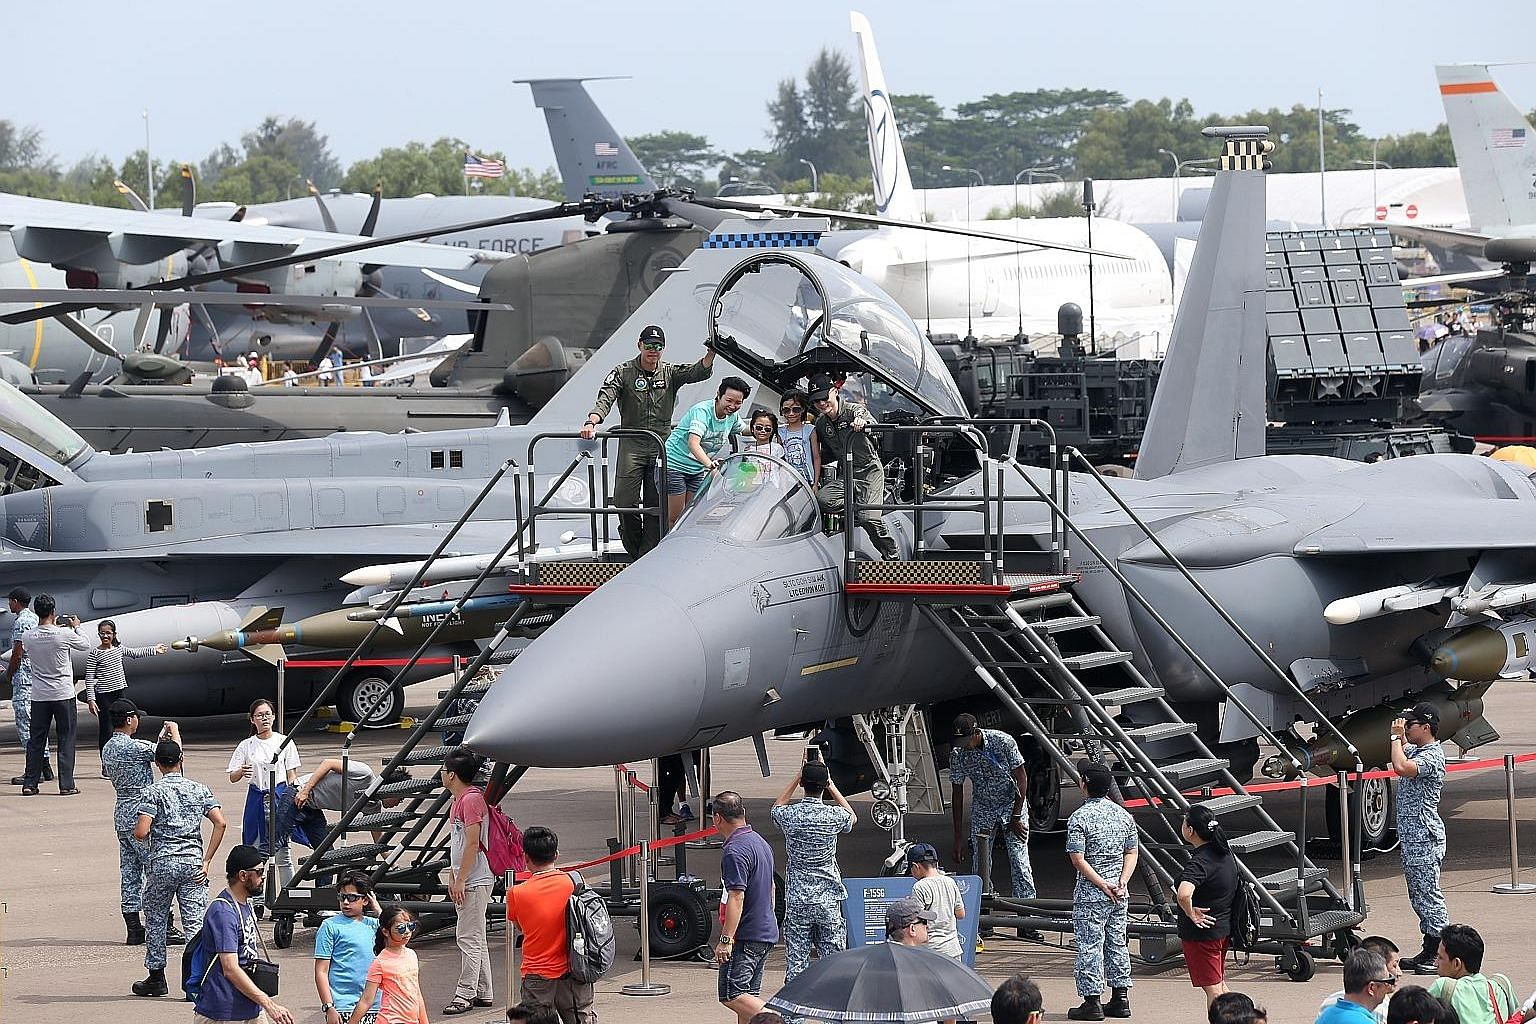 One of the highlights of last year's Singapore Airshow was the chance for attendees to sit in the cockpits of fighter jets. This year's event expects around 65 top aerospace and defence firms at Asia's largest aerospace show. ST FILE PHOTO